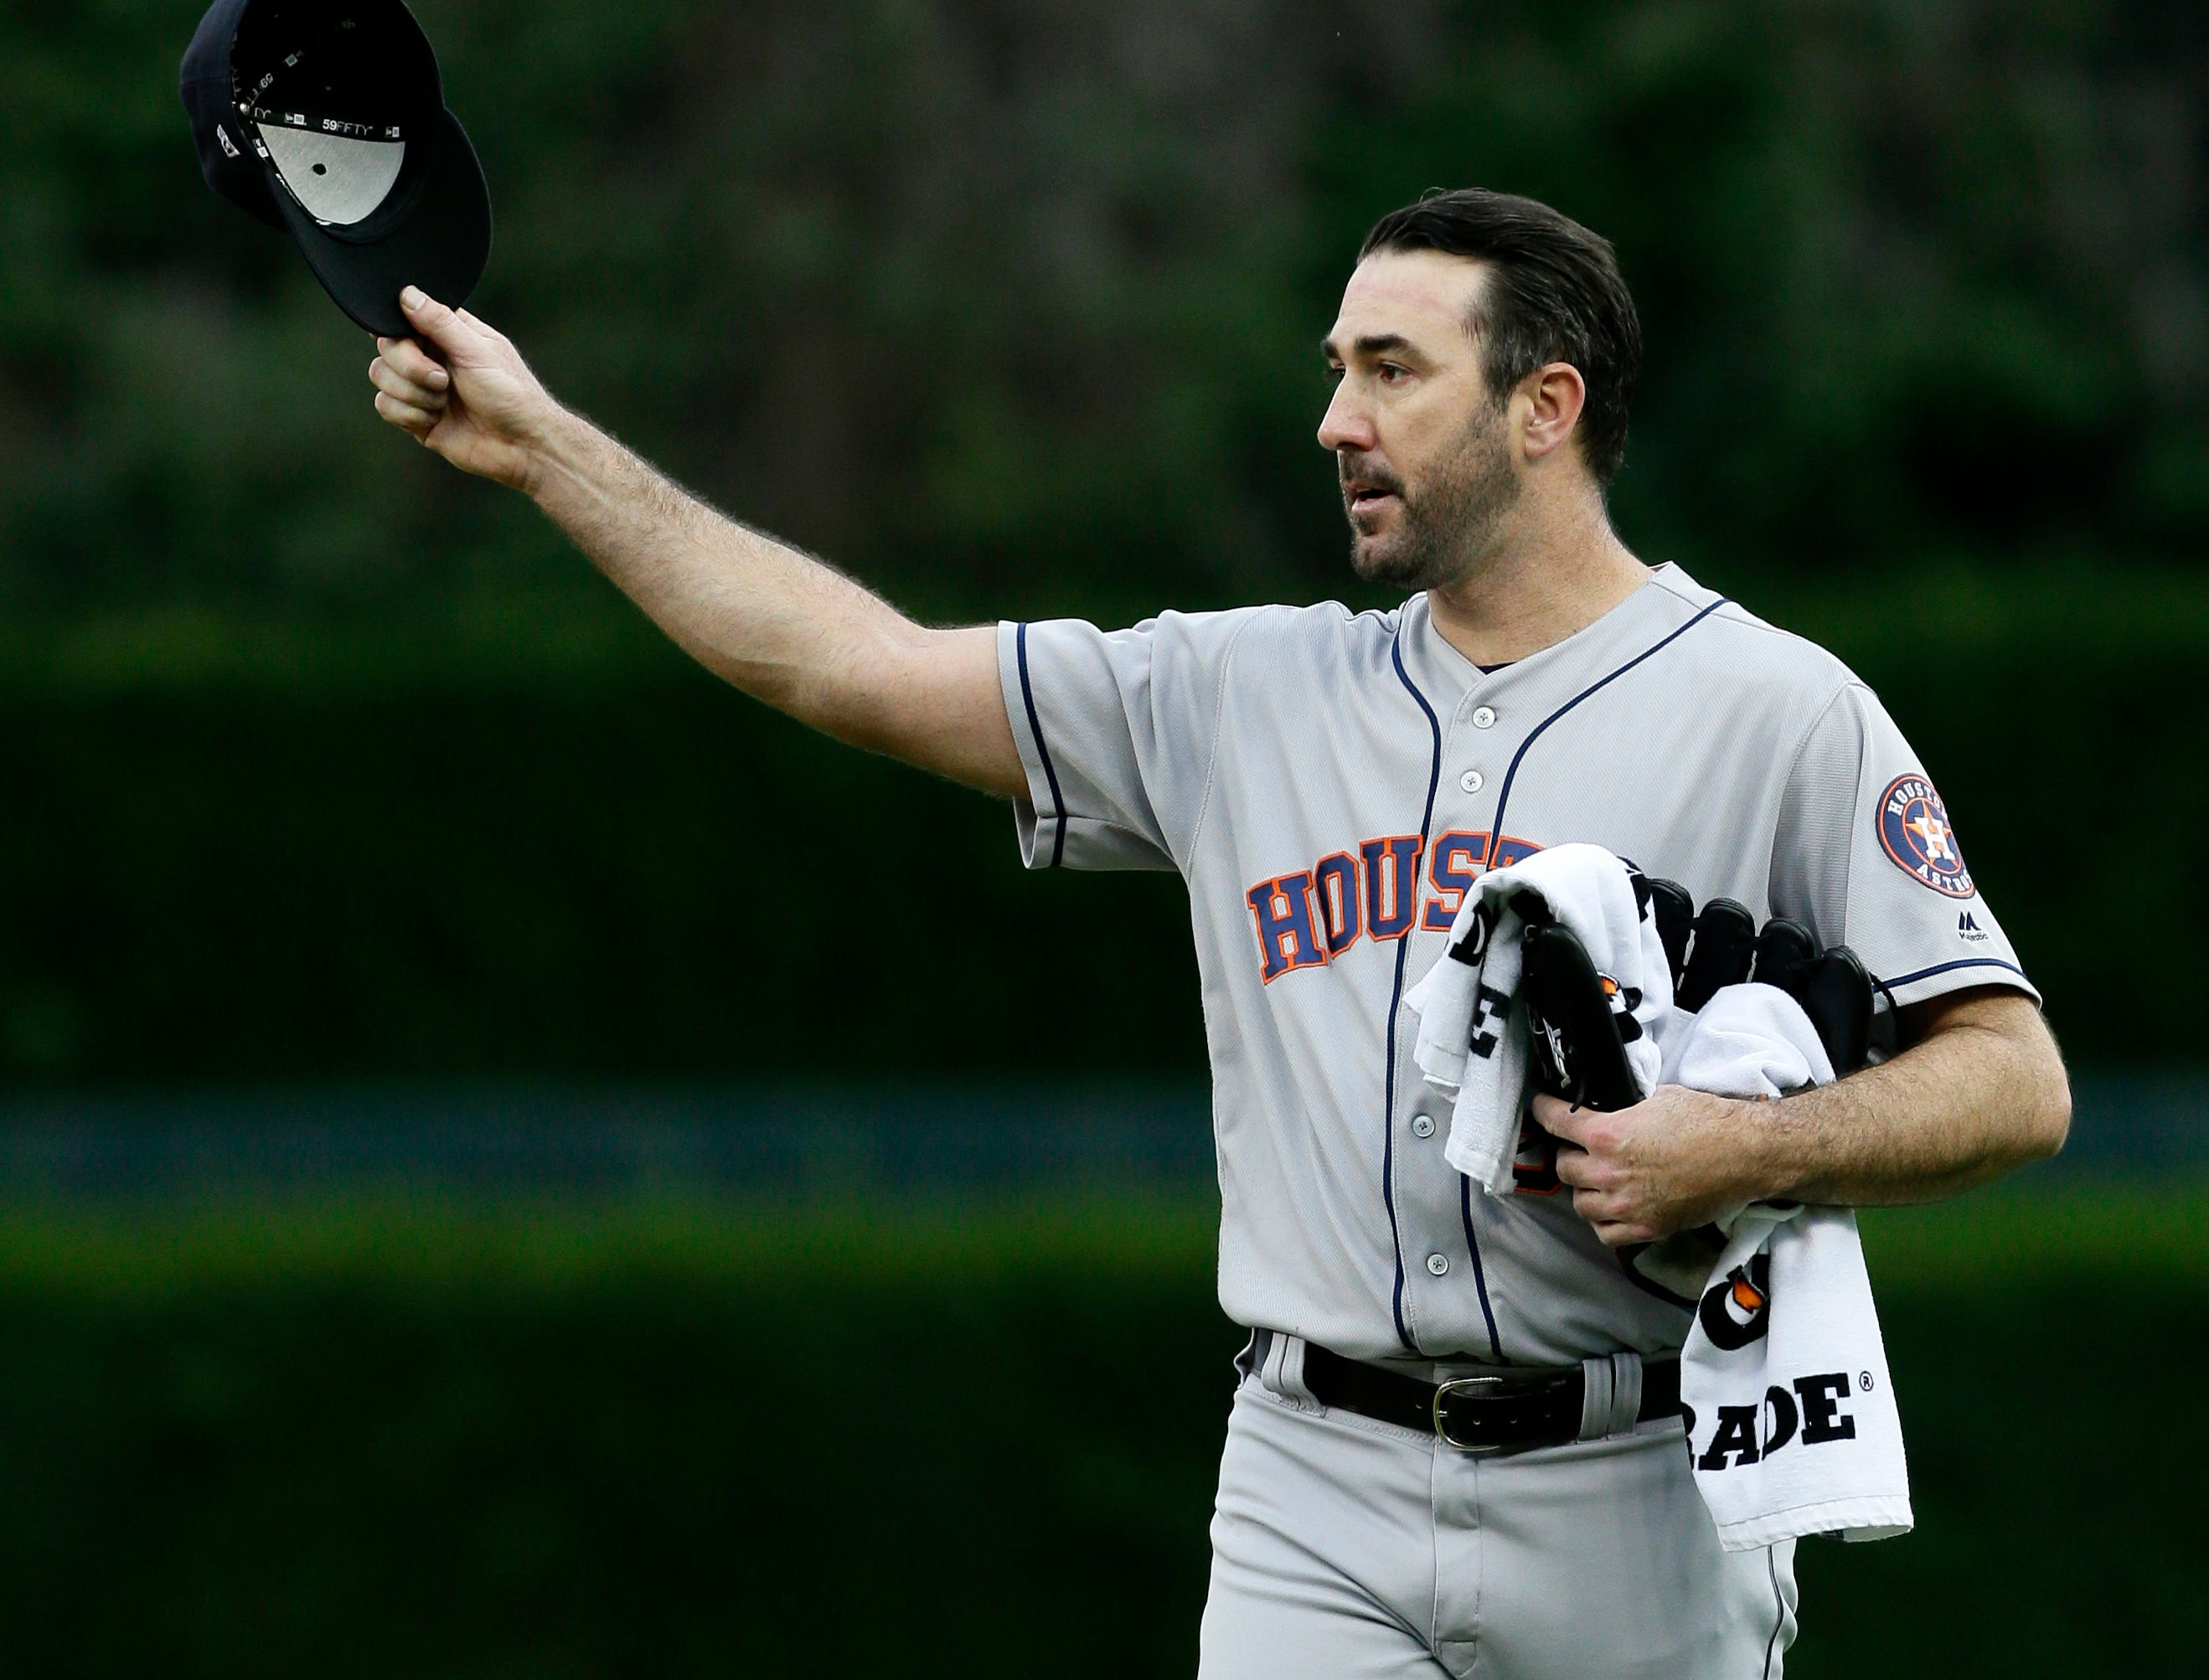 Houston Astros starting pitcher Justin Verlander acknowledges the fans at Comerica Park after he was introduced before a baseball game against the Detroit Tigers, Monday, Sept. 10, 2018, in Detroit.